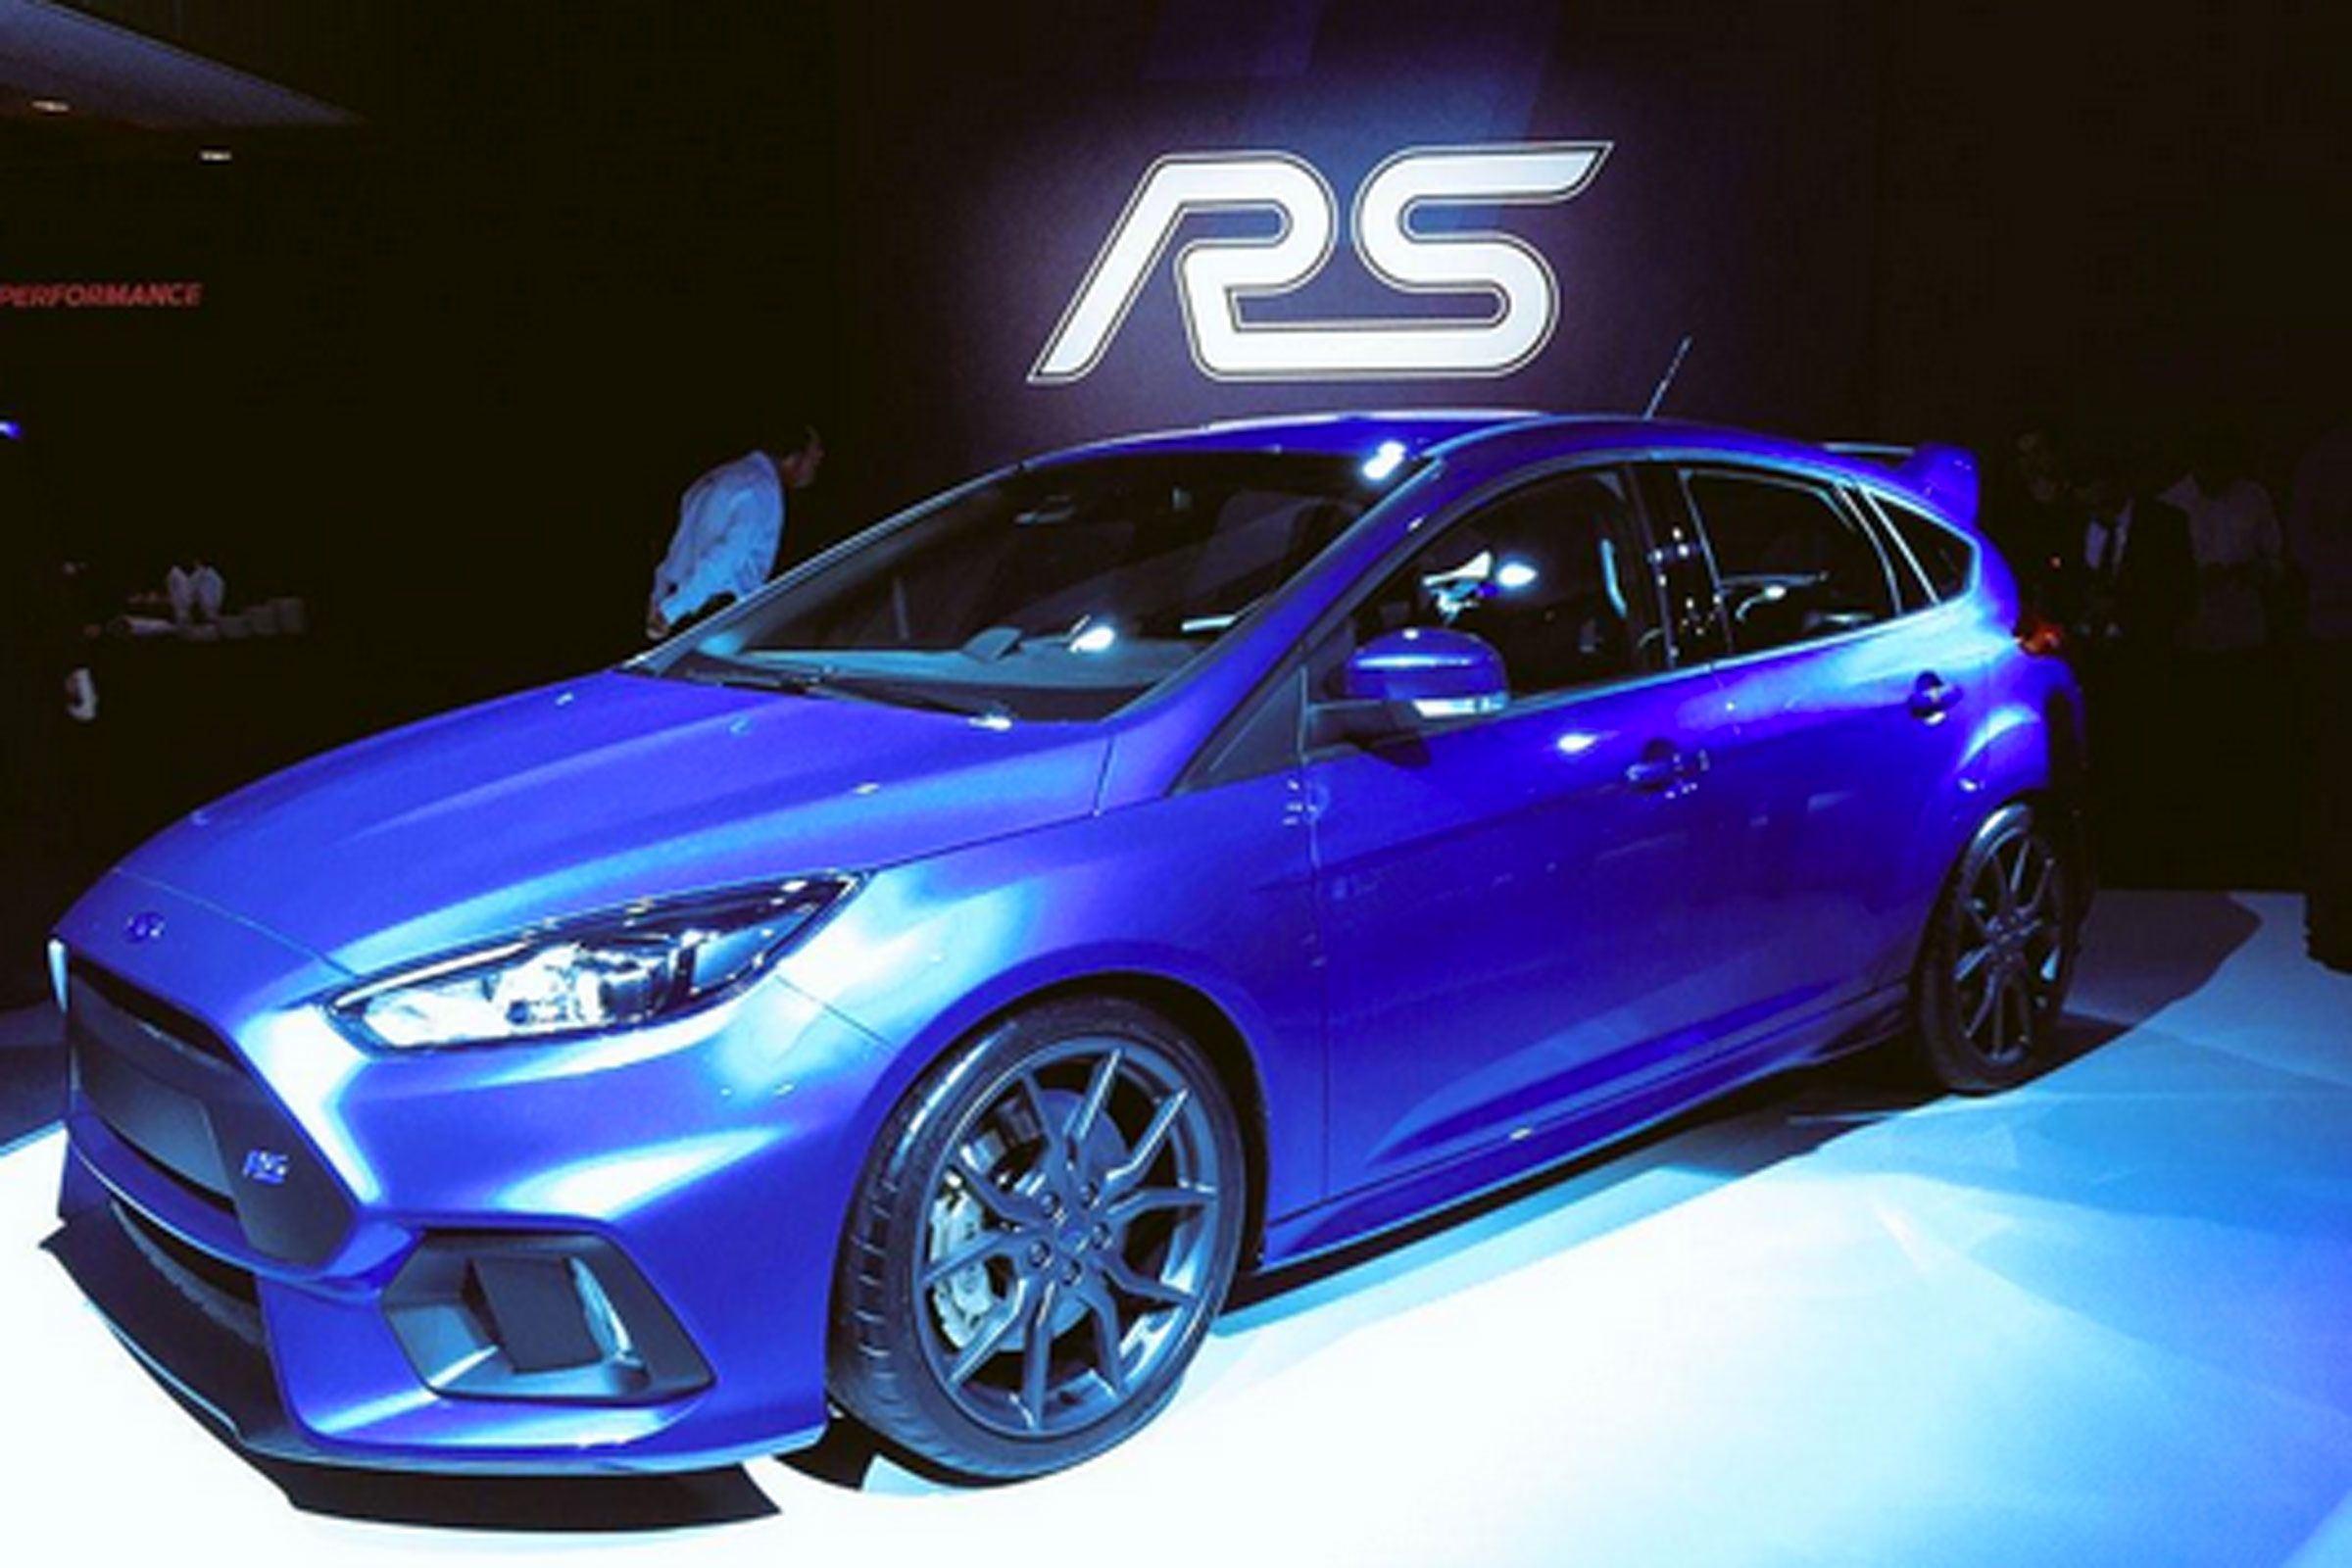 price cargurus ford rs overview focus hatchback pic cars